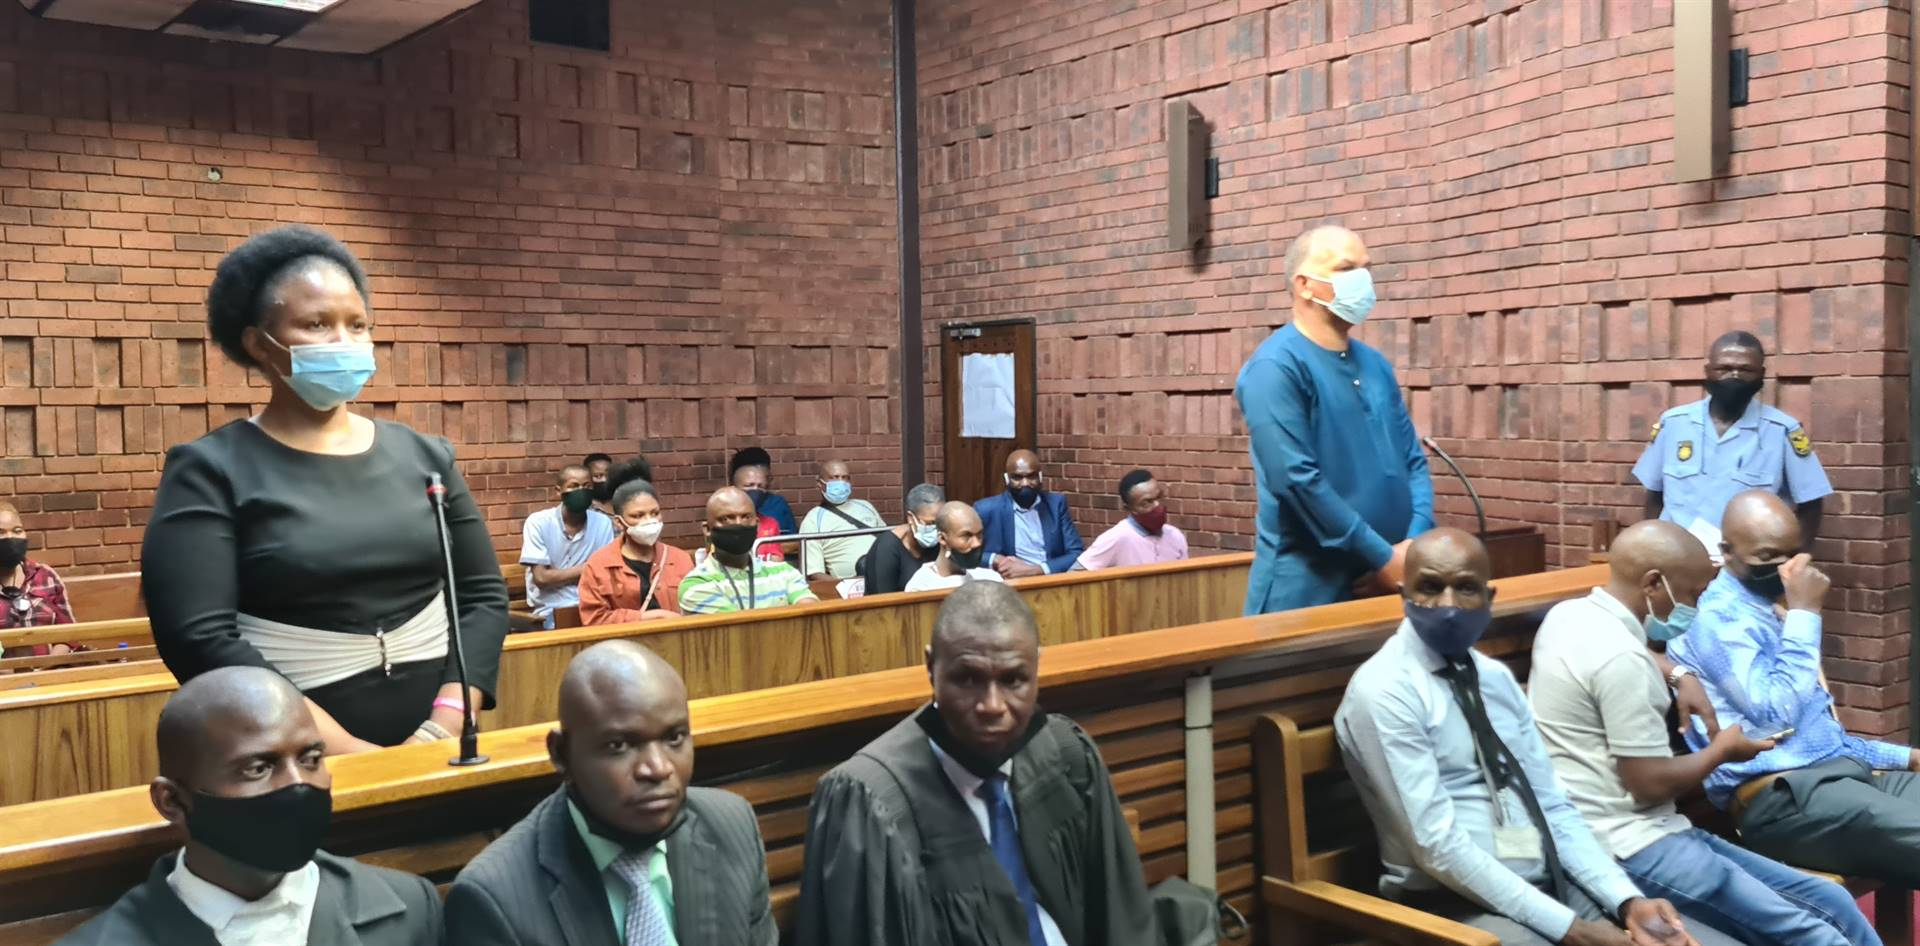 Brigadier Rosy Resandt and her husband Clifford Cornelius Resandt appeared in the Pretoria Magistrate's Court.